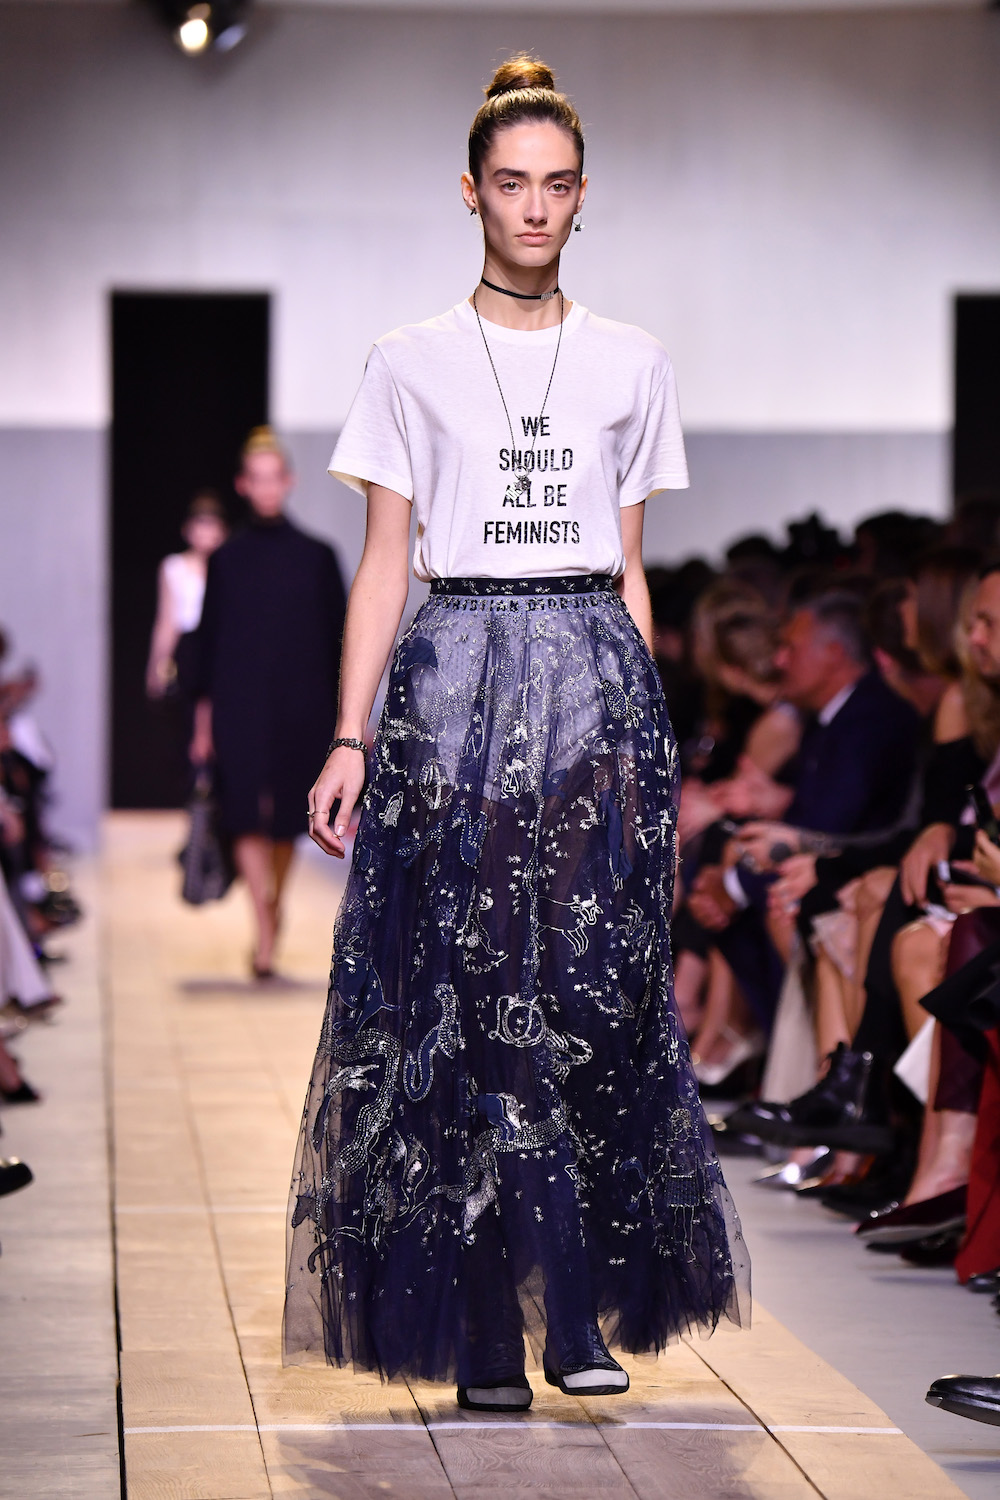 A model walks the runway Christian Dior show as part of the Paris Fashion Week Womenswear Spring/Summer 2017 on September 30, 2016 in Paris, France.